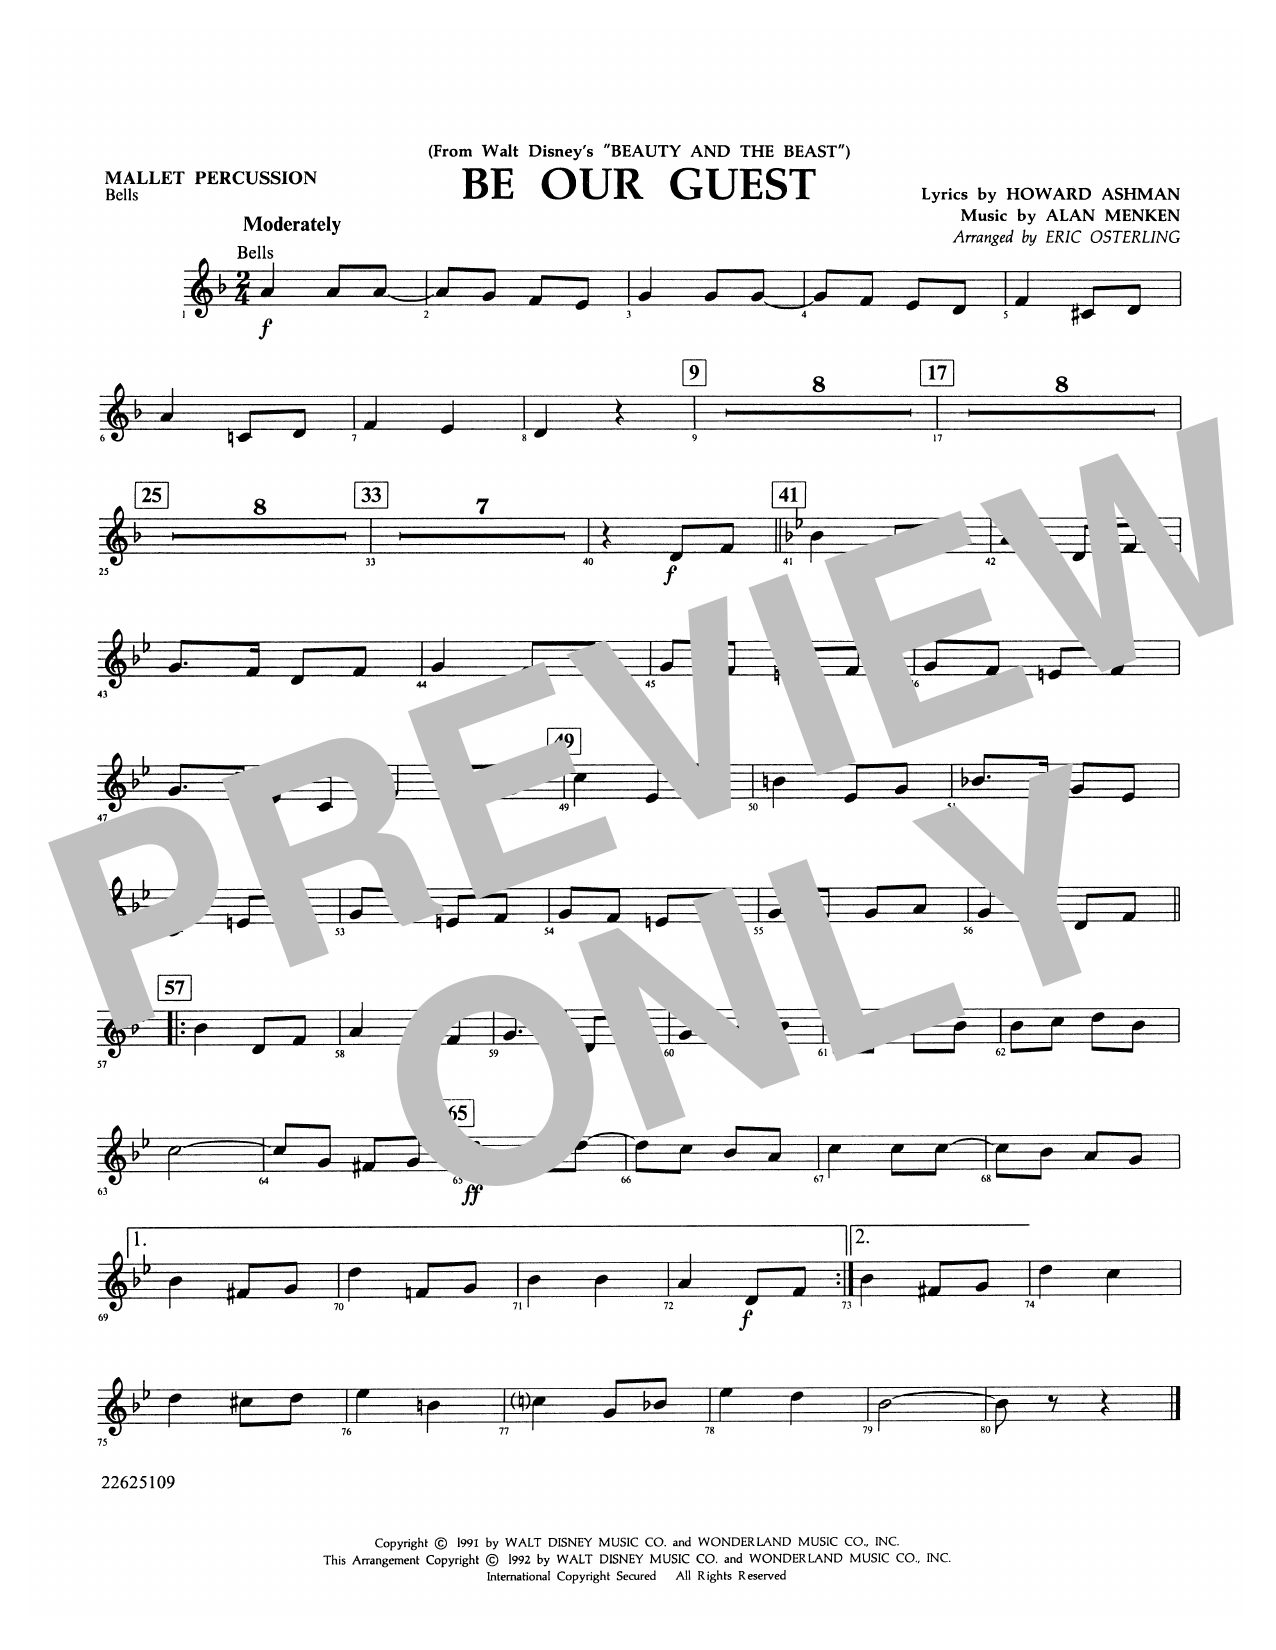 Be Our Guest - Mallet Percussion Sheet Music